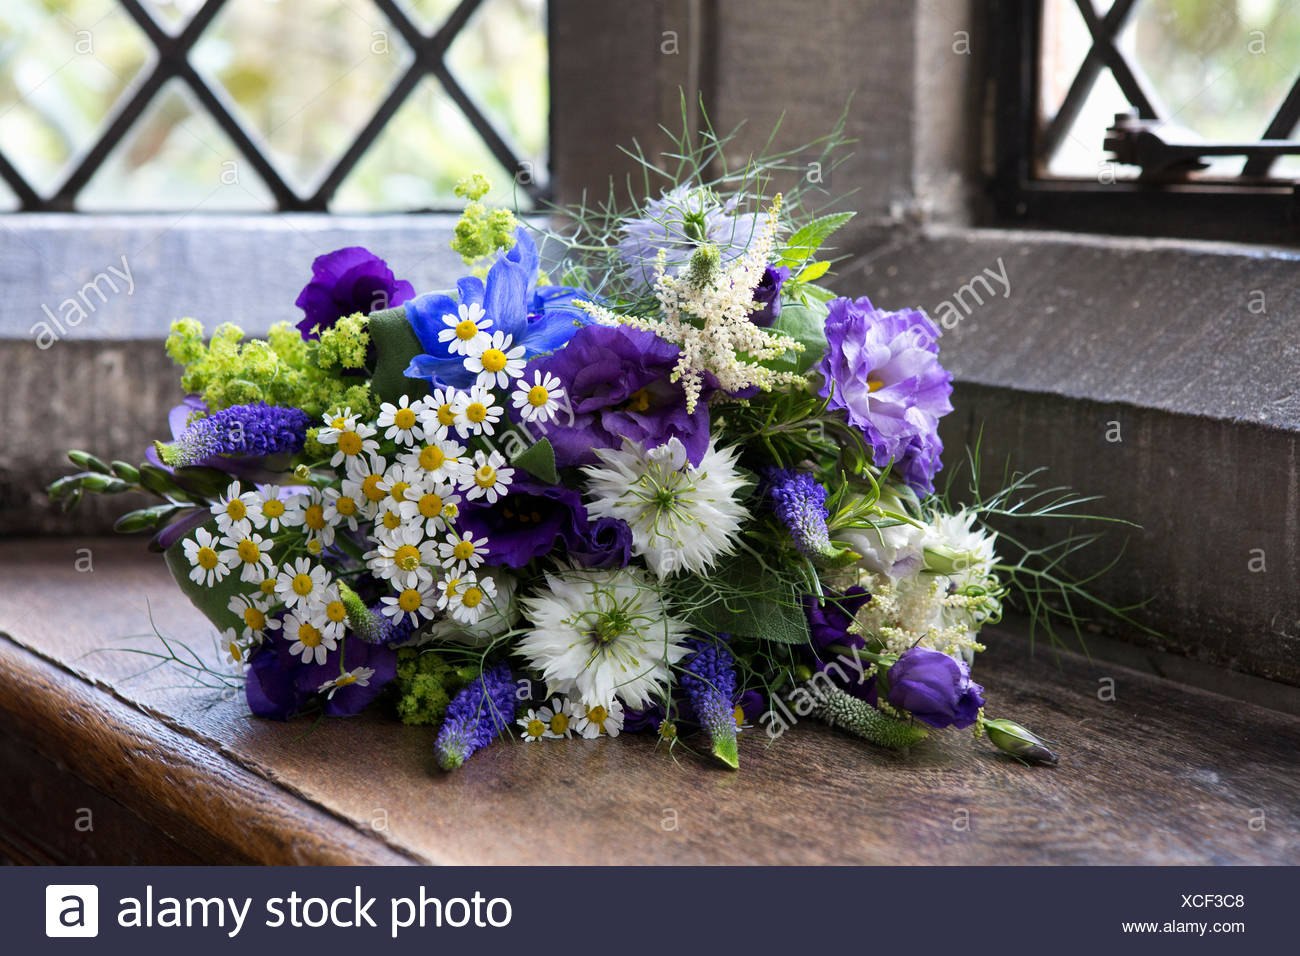 Close up of a bouquet of blue and white wedding flowers stock photo close up of a bouquet of blue and white wedding flowers izmirmasajfo